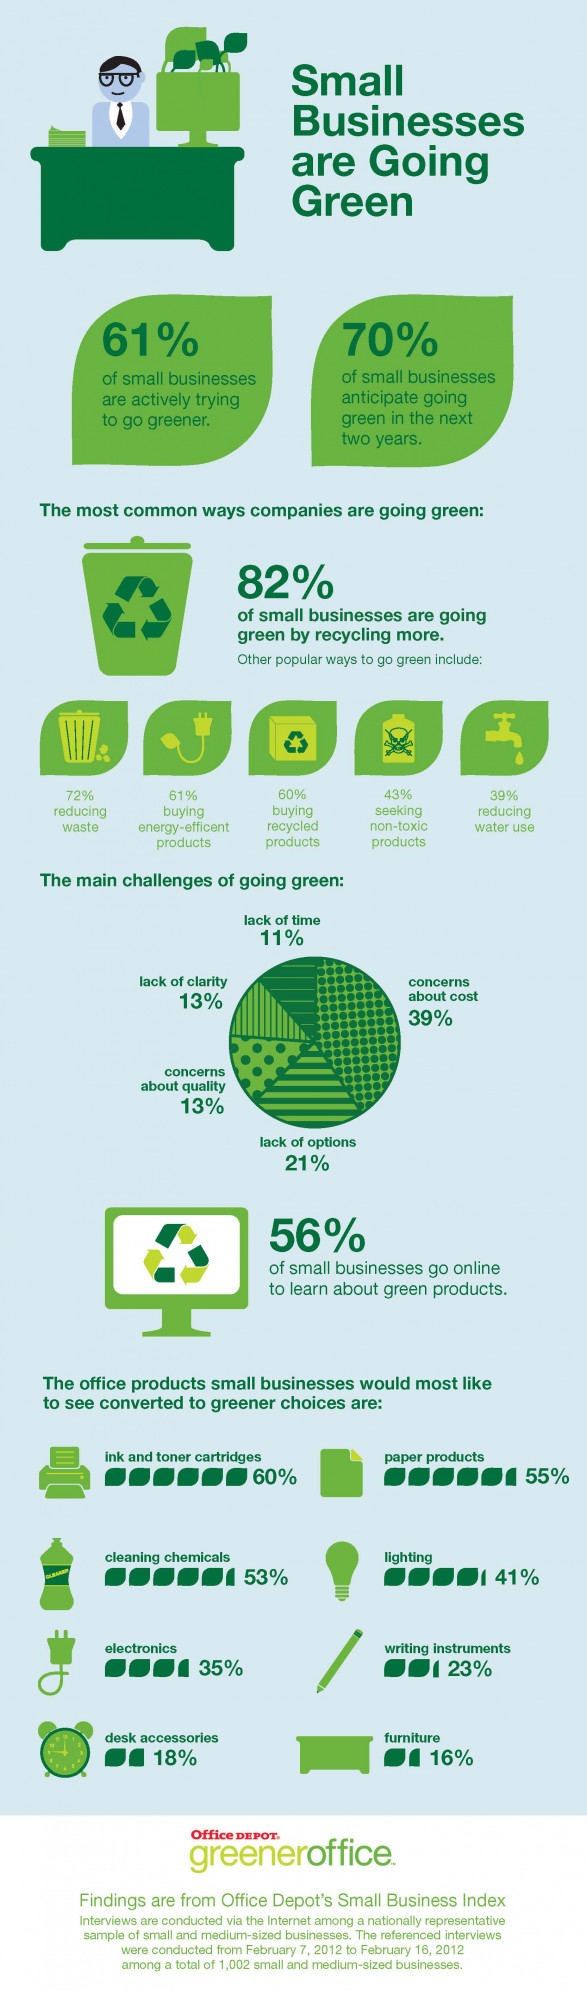 Office Depot Survey Finds Small Businesses Trying to Go Greener